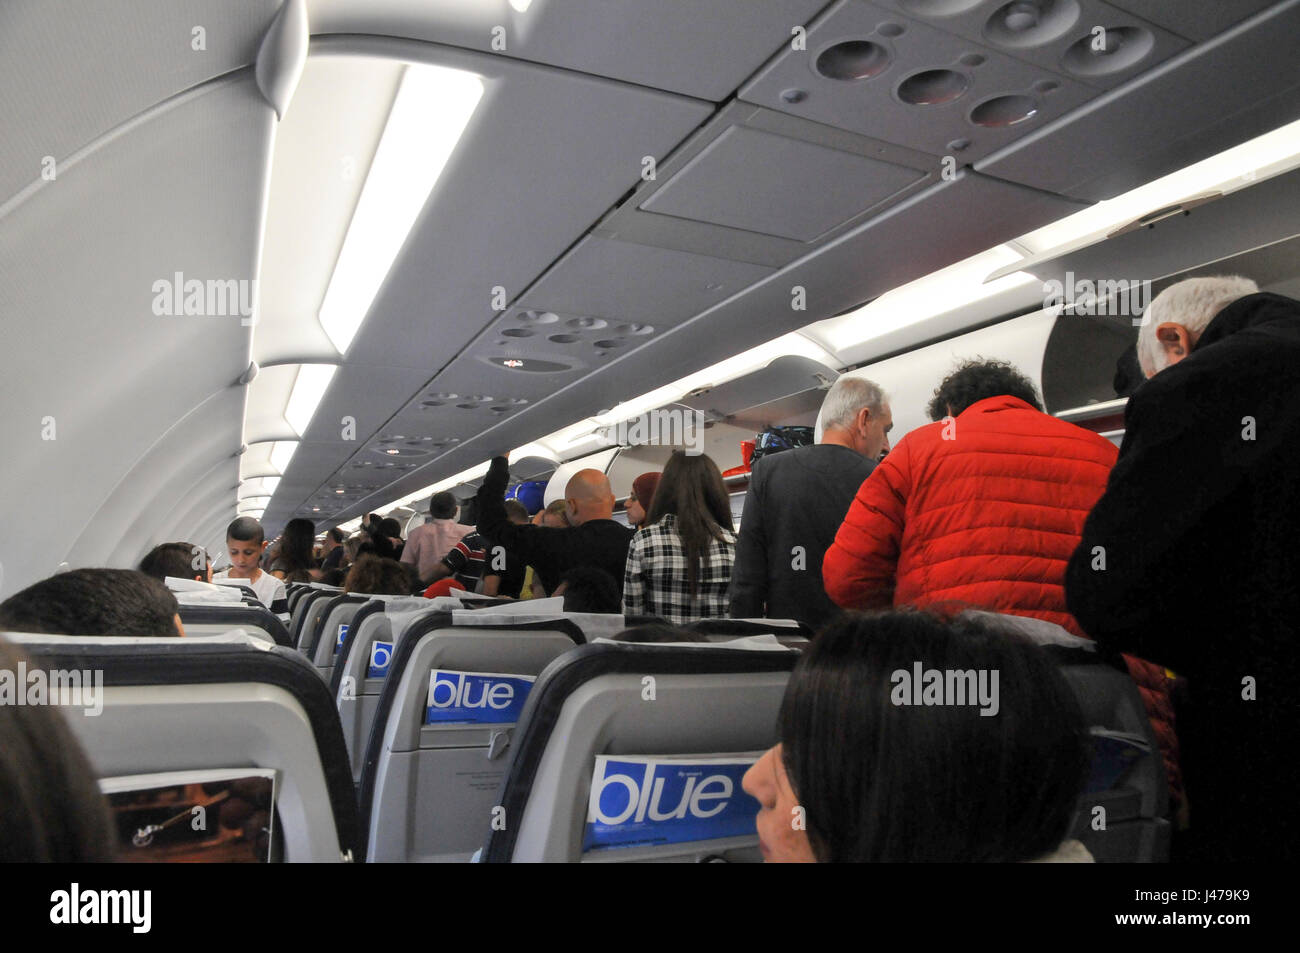 interior of the cabin of an Aegean Airlines Airbus A320-200 at Ben Gorion international airport, Israel - Stock Image